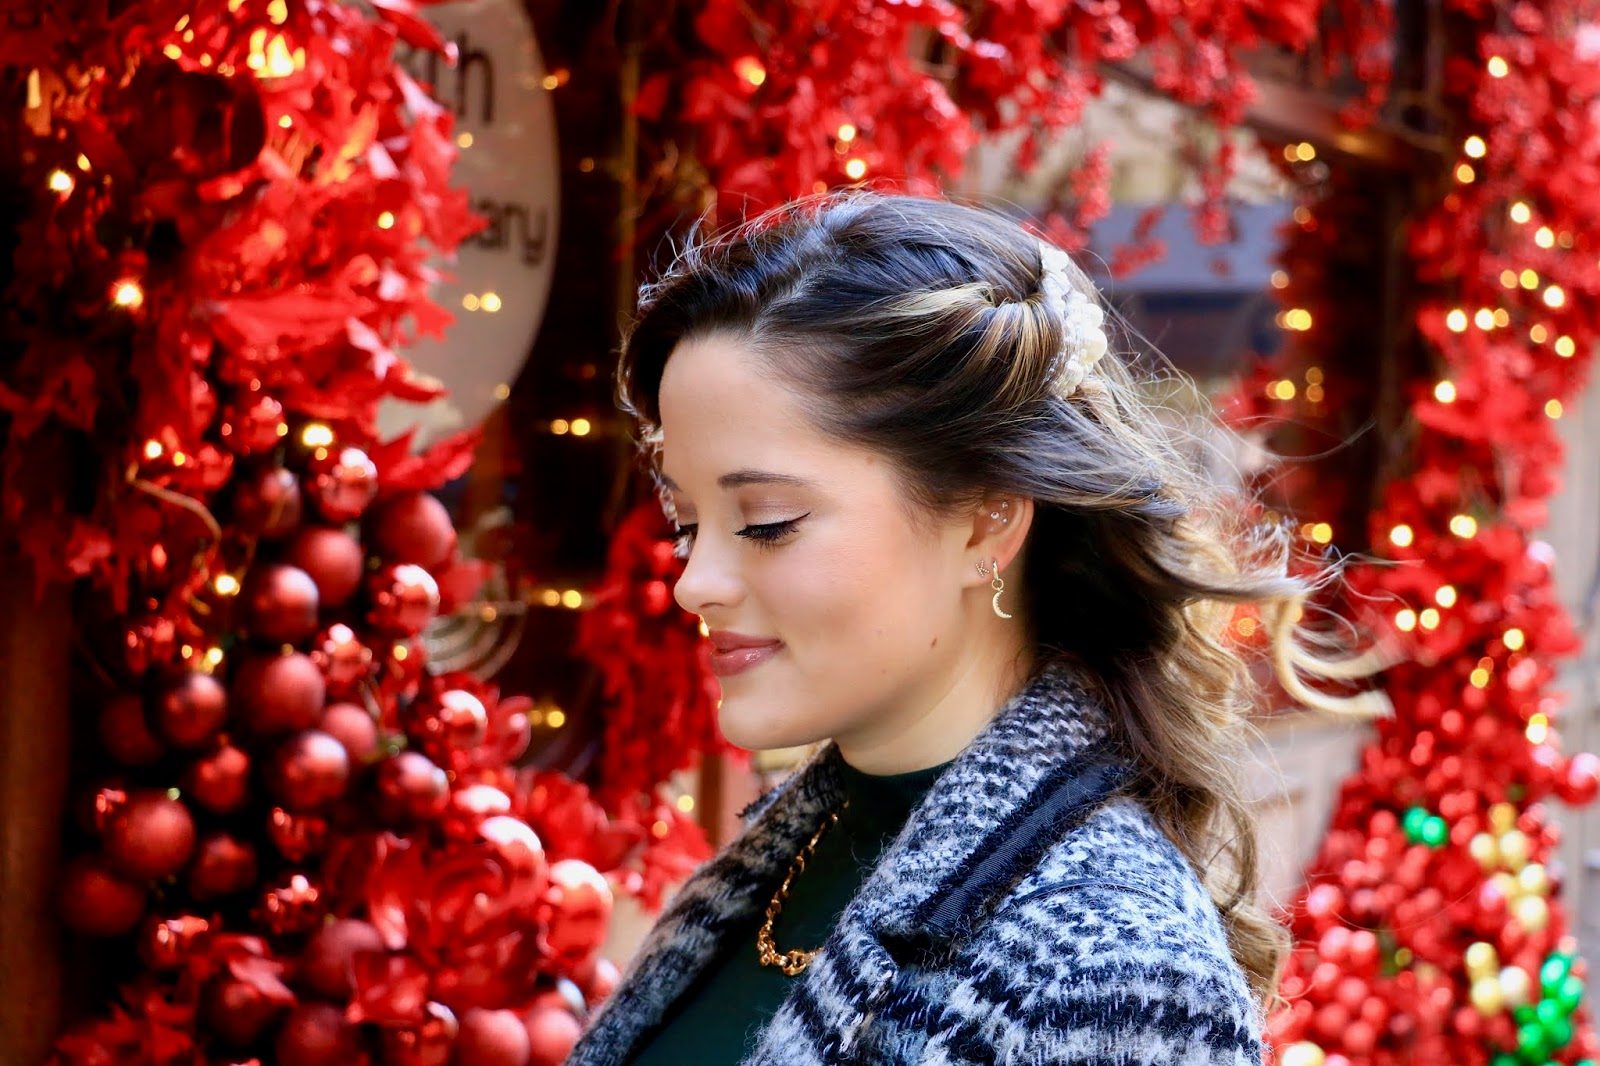 Beauty blogger Kathleen Harper's 2019 holiday hair style.